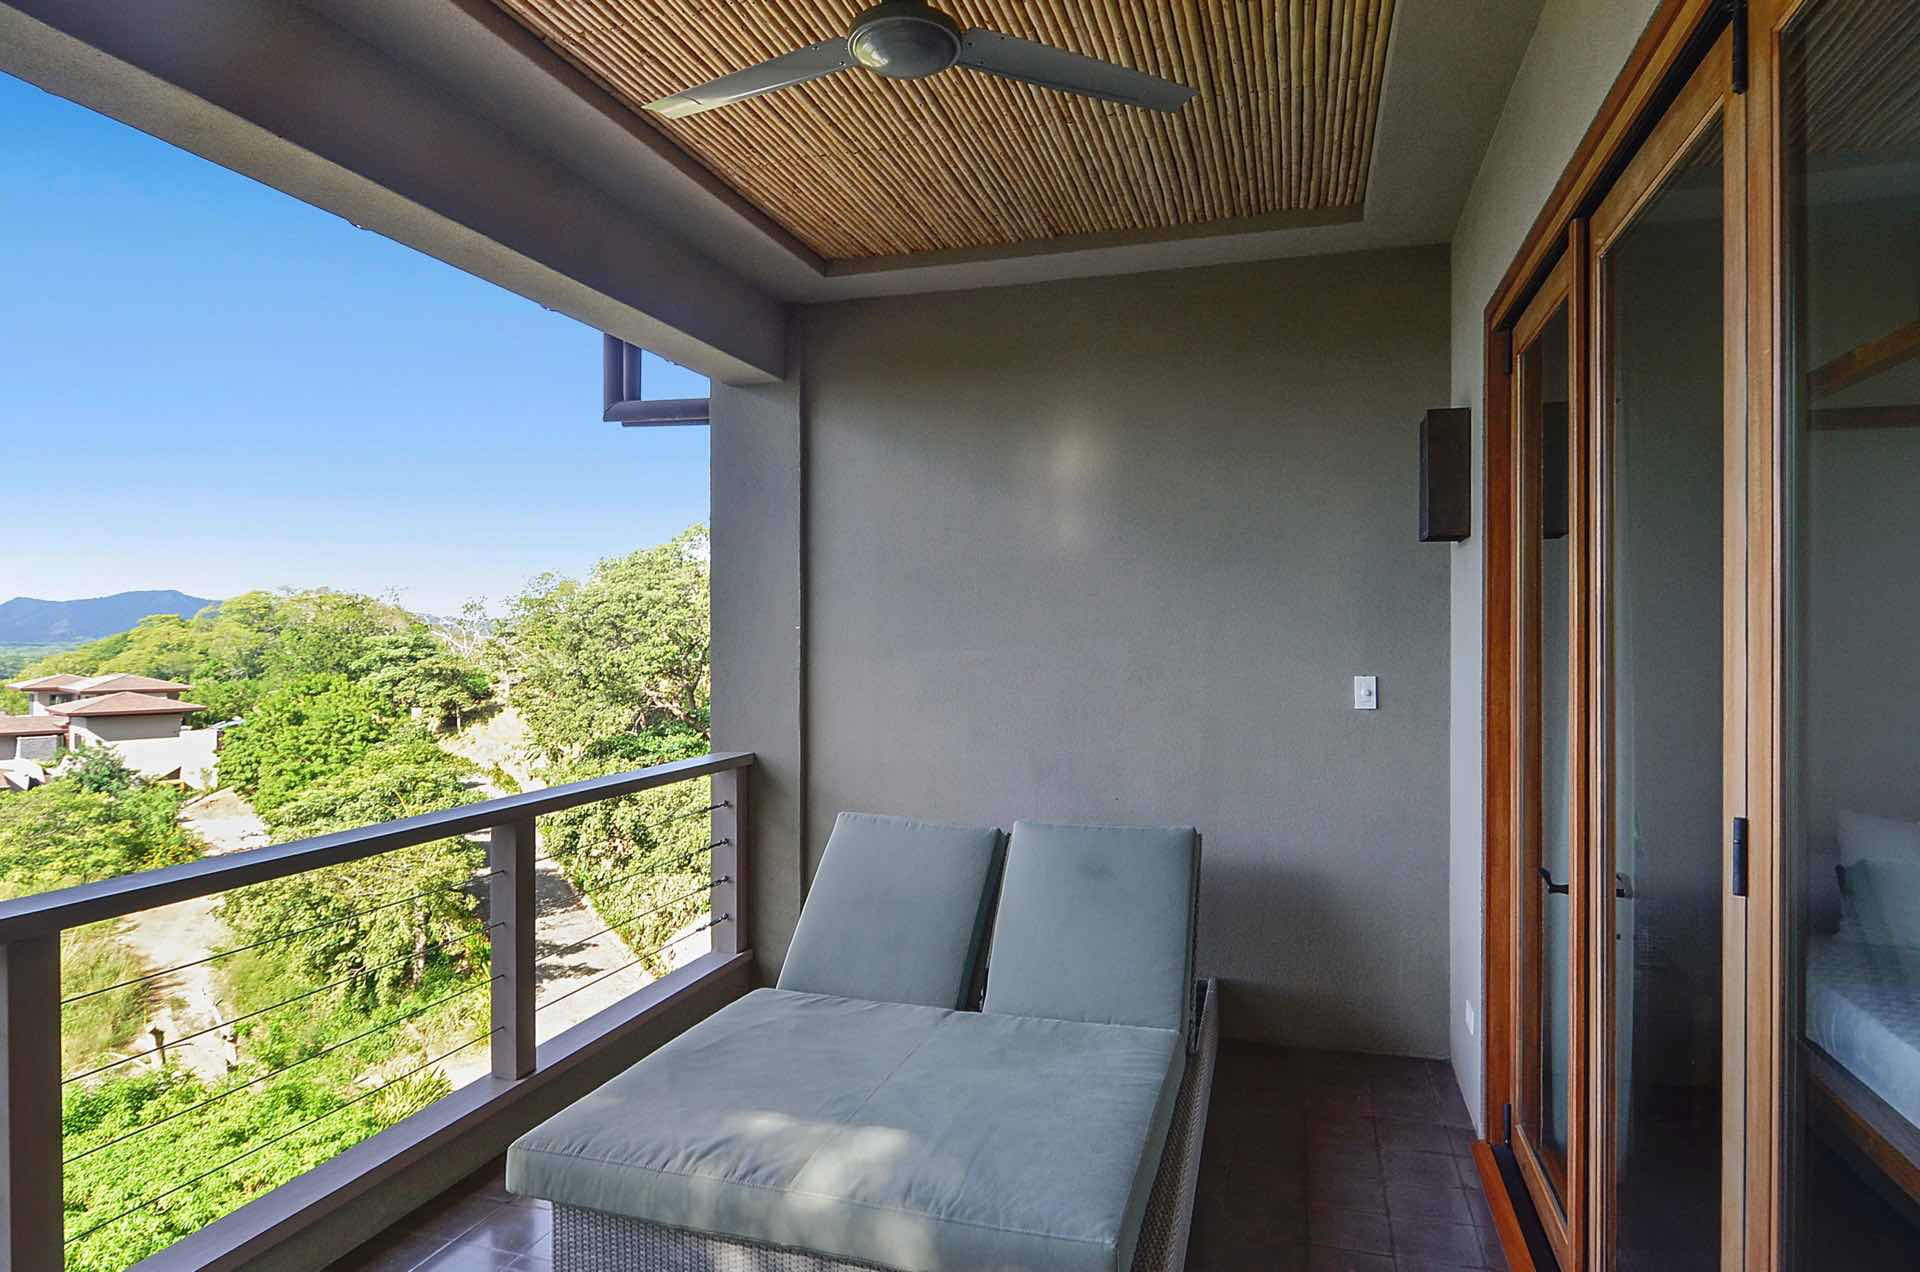 Balcony with Lounge Chair